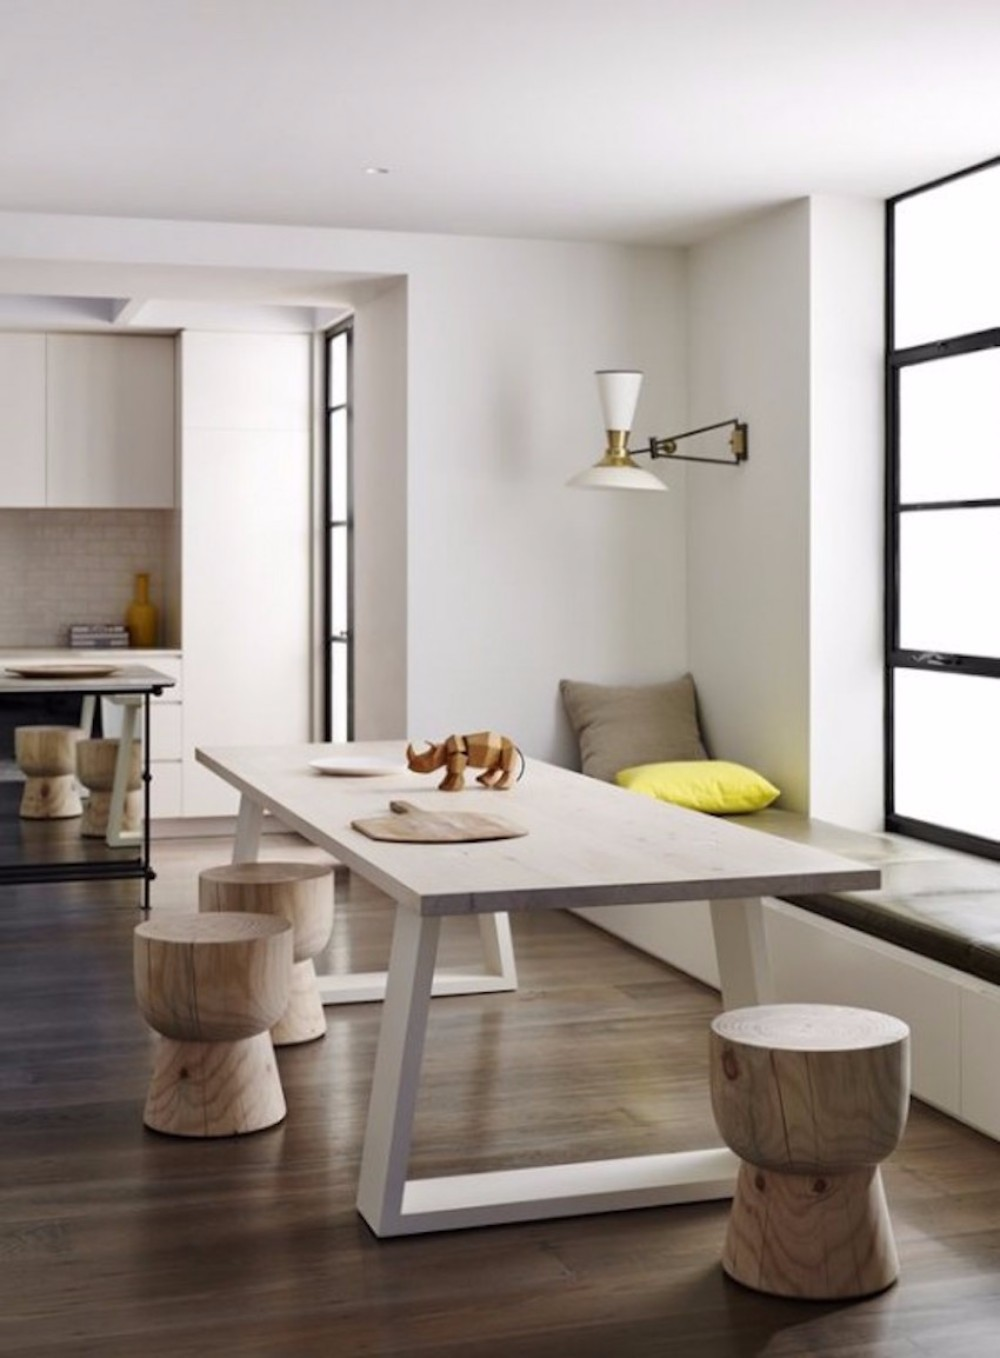 minimalist 20 Timeless Minimalist Dining Rooms with Modern Dining Tables 25 timeless minimalist dining rooms with modern dining tables 6